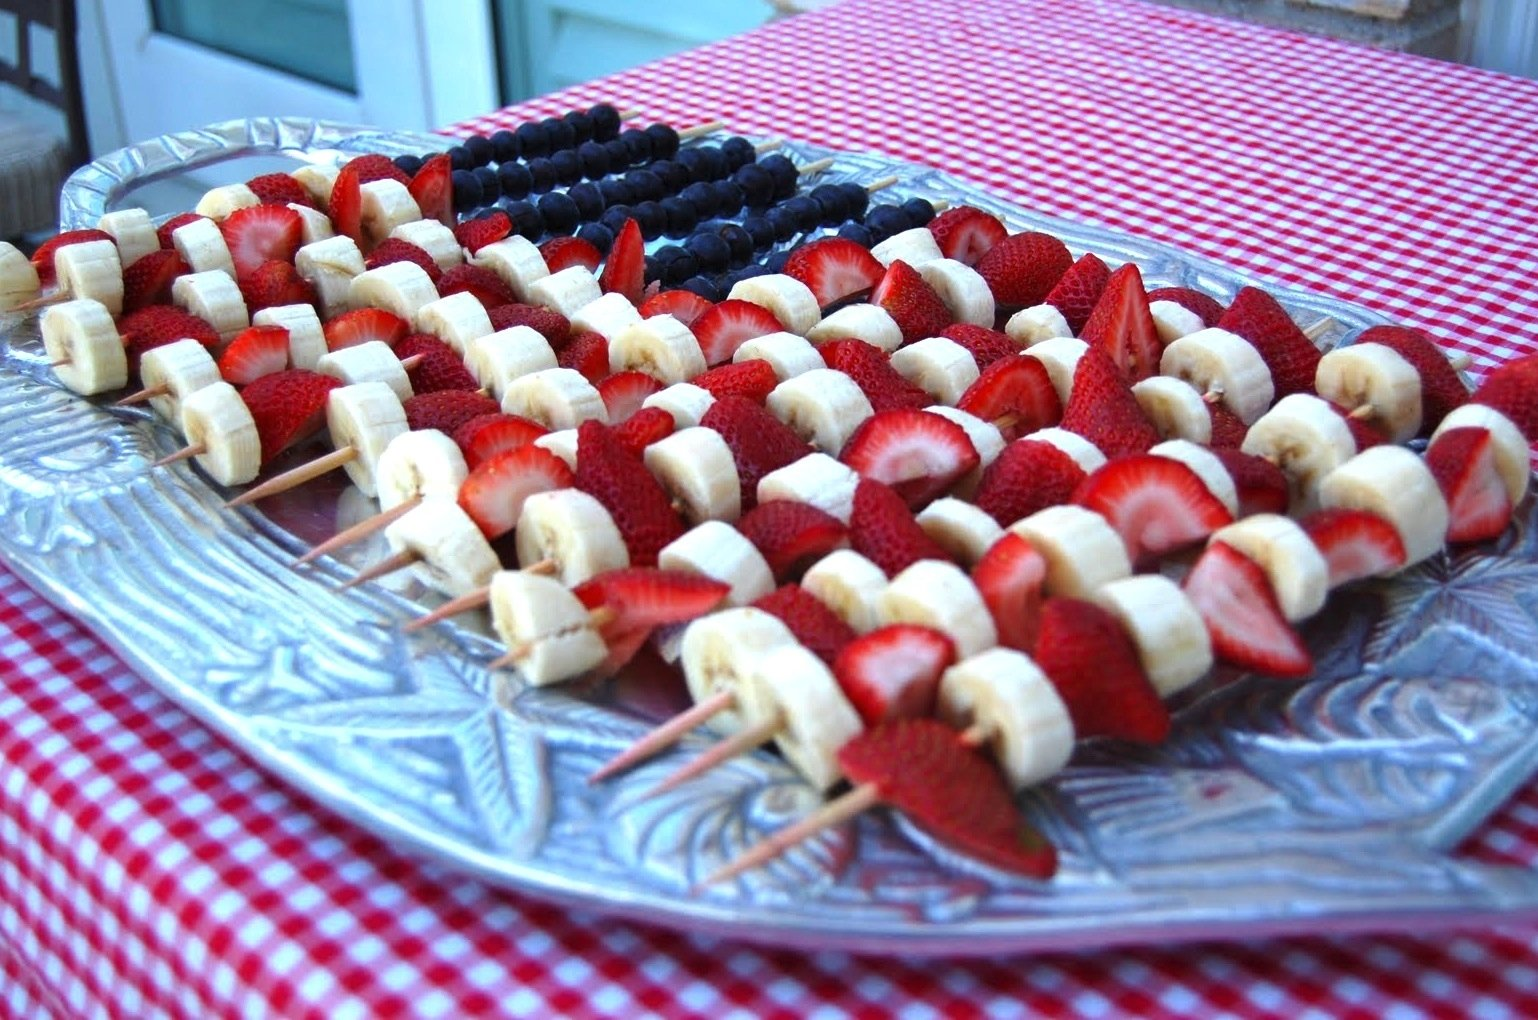 10 Lovely 4Th Of July Bbq Menu Ideas awesome food for your july 4th bbq lds s m i l e 3 2020